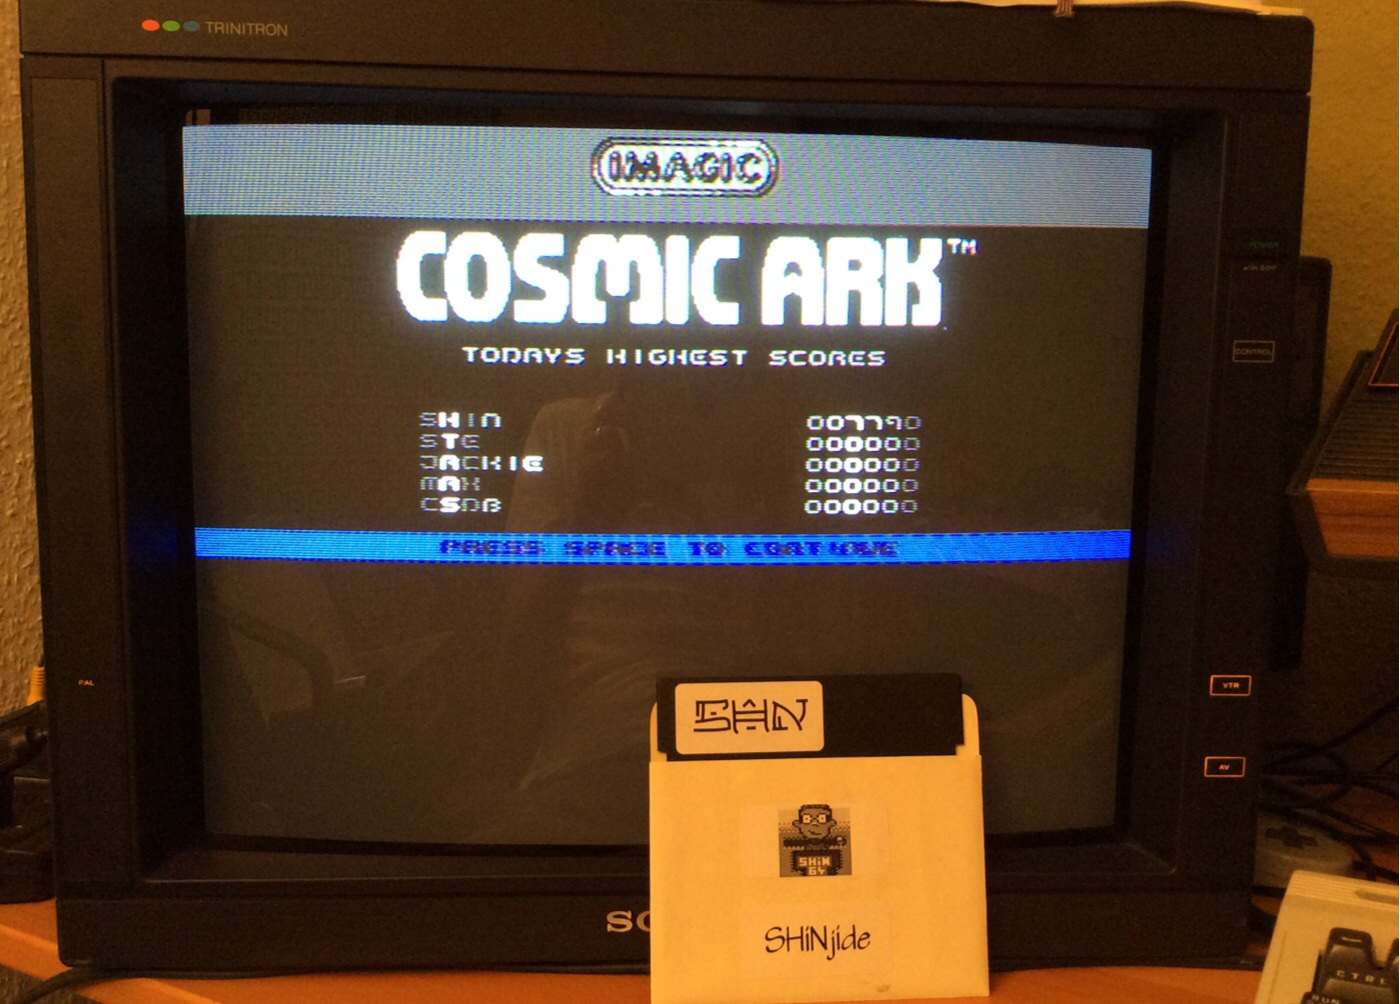 SHiNjide: Cosmic Ark (Commodore 64) 7,790 points on 2014-07-11 12:35:57